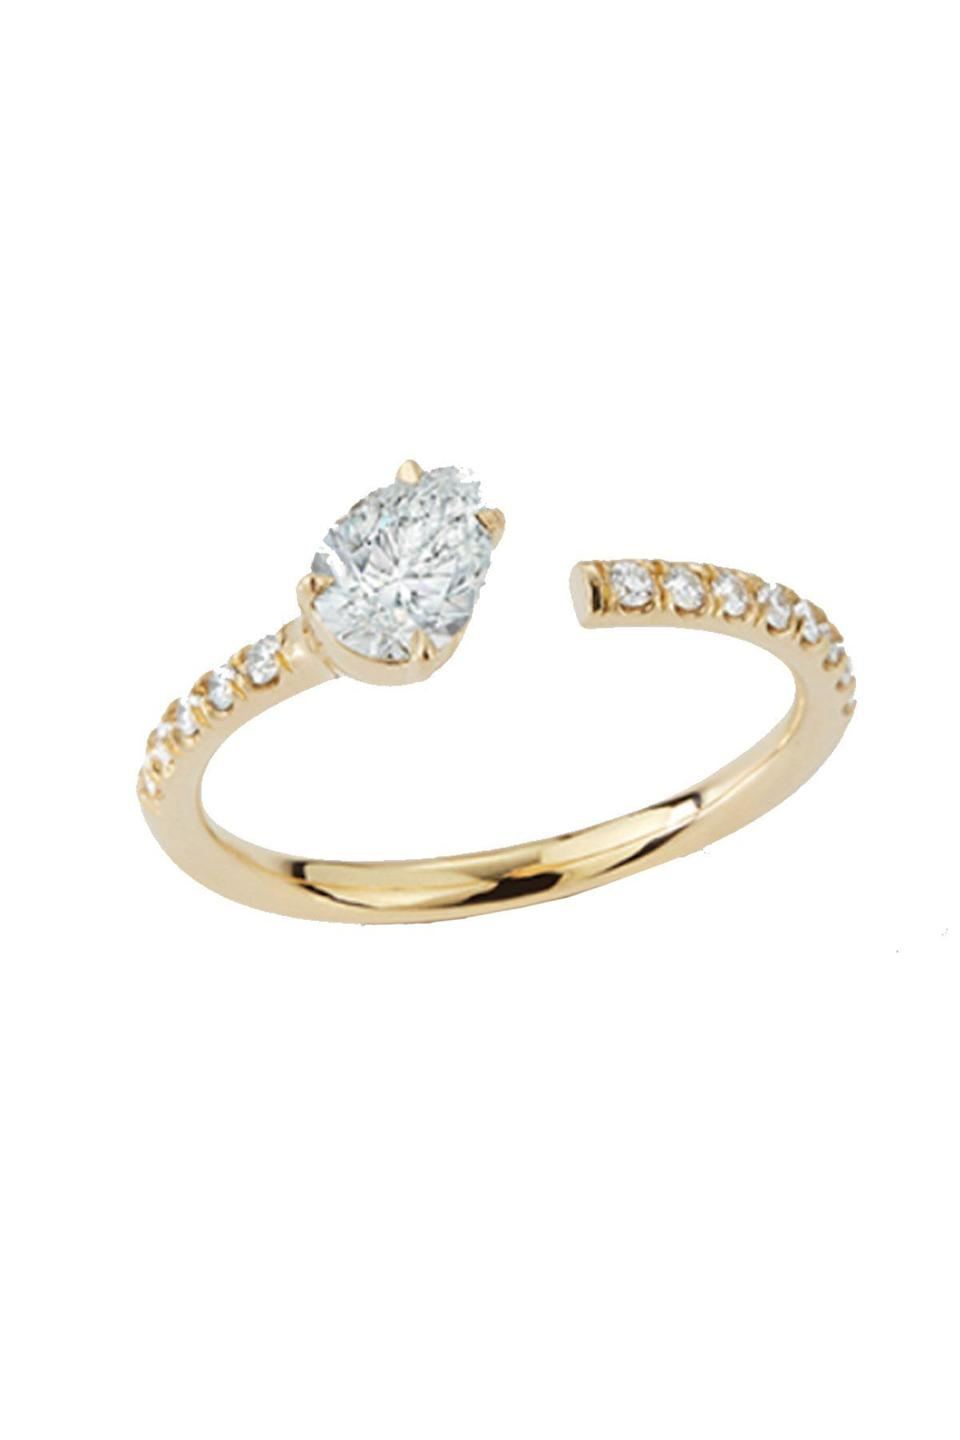 """<p><strong>Jemma Wynne</strong></p><p>jemmawynne.com</p><p><strong>$7560.00</strong></p><p><a href=""""https://jemmawynne.com/jewelry/prive-diamond-pear-open-ring/"""" rel=""""nofollow noopener"""" target=""""_blank"""" data-ylk=""""slk:Shop Now"""" class=""""link rapid-noclick-resp"""">Shop Now</a></p><p>Perfect for the bride who loves to stack her rings, Jemma Wynne offers an option that will sit beautifully alone<em> and</em> with a wedding band.</p>"""